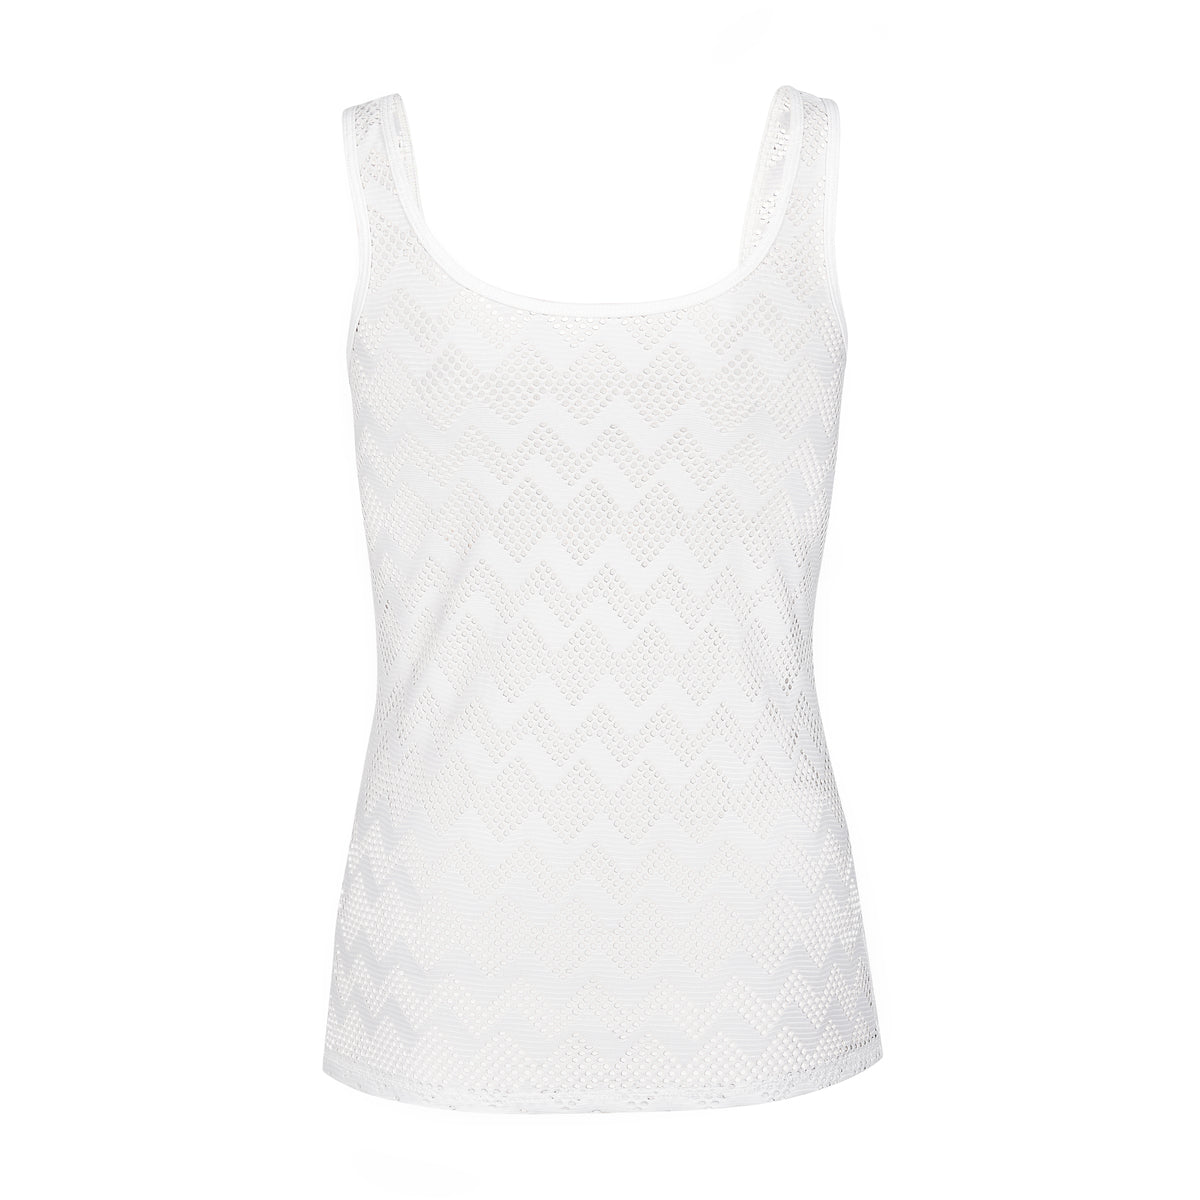 "Tanktop "" Michelle"" in soft white lace - IAM3F"